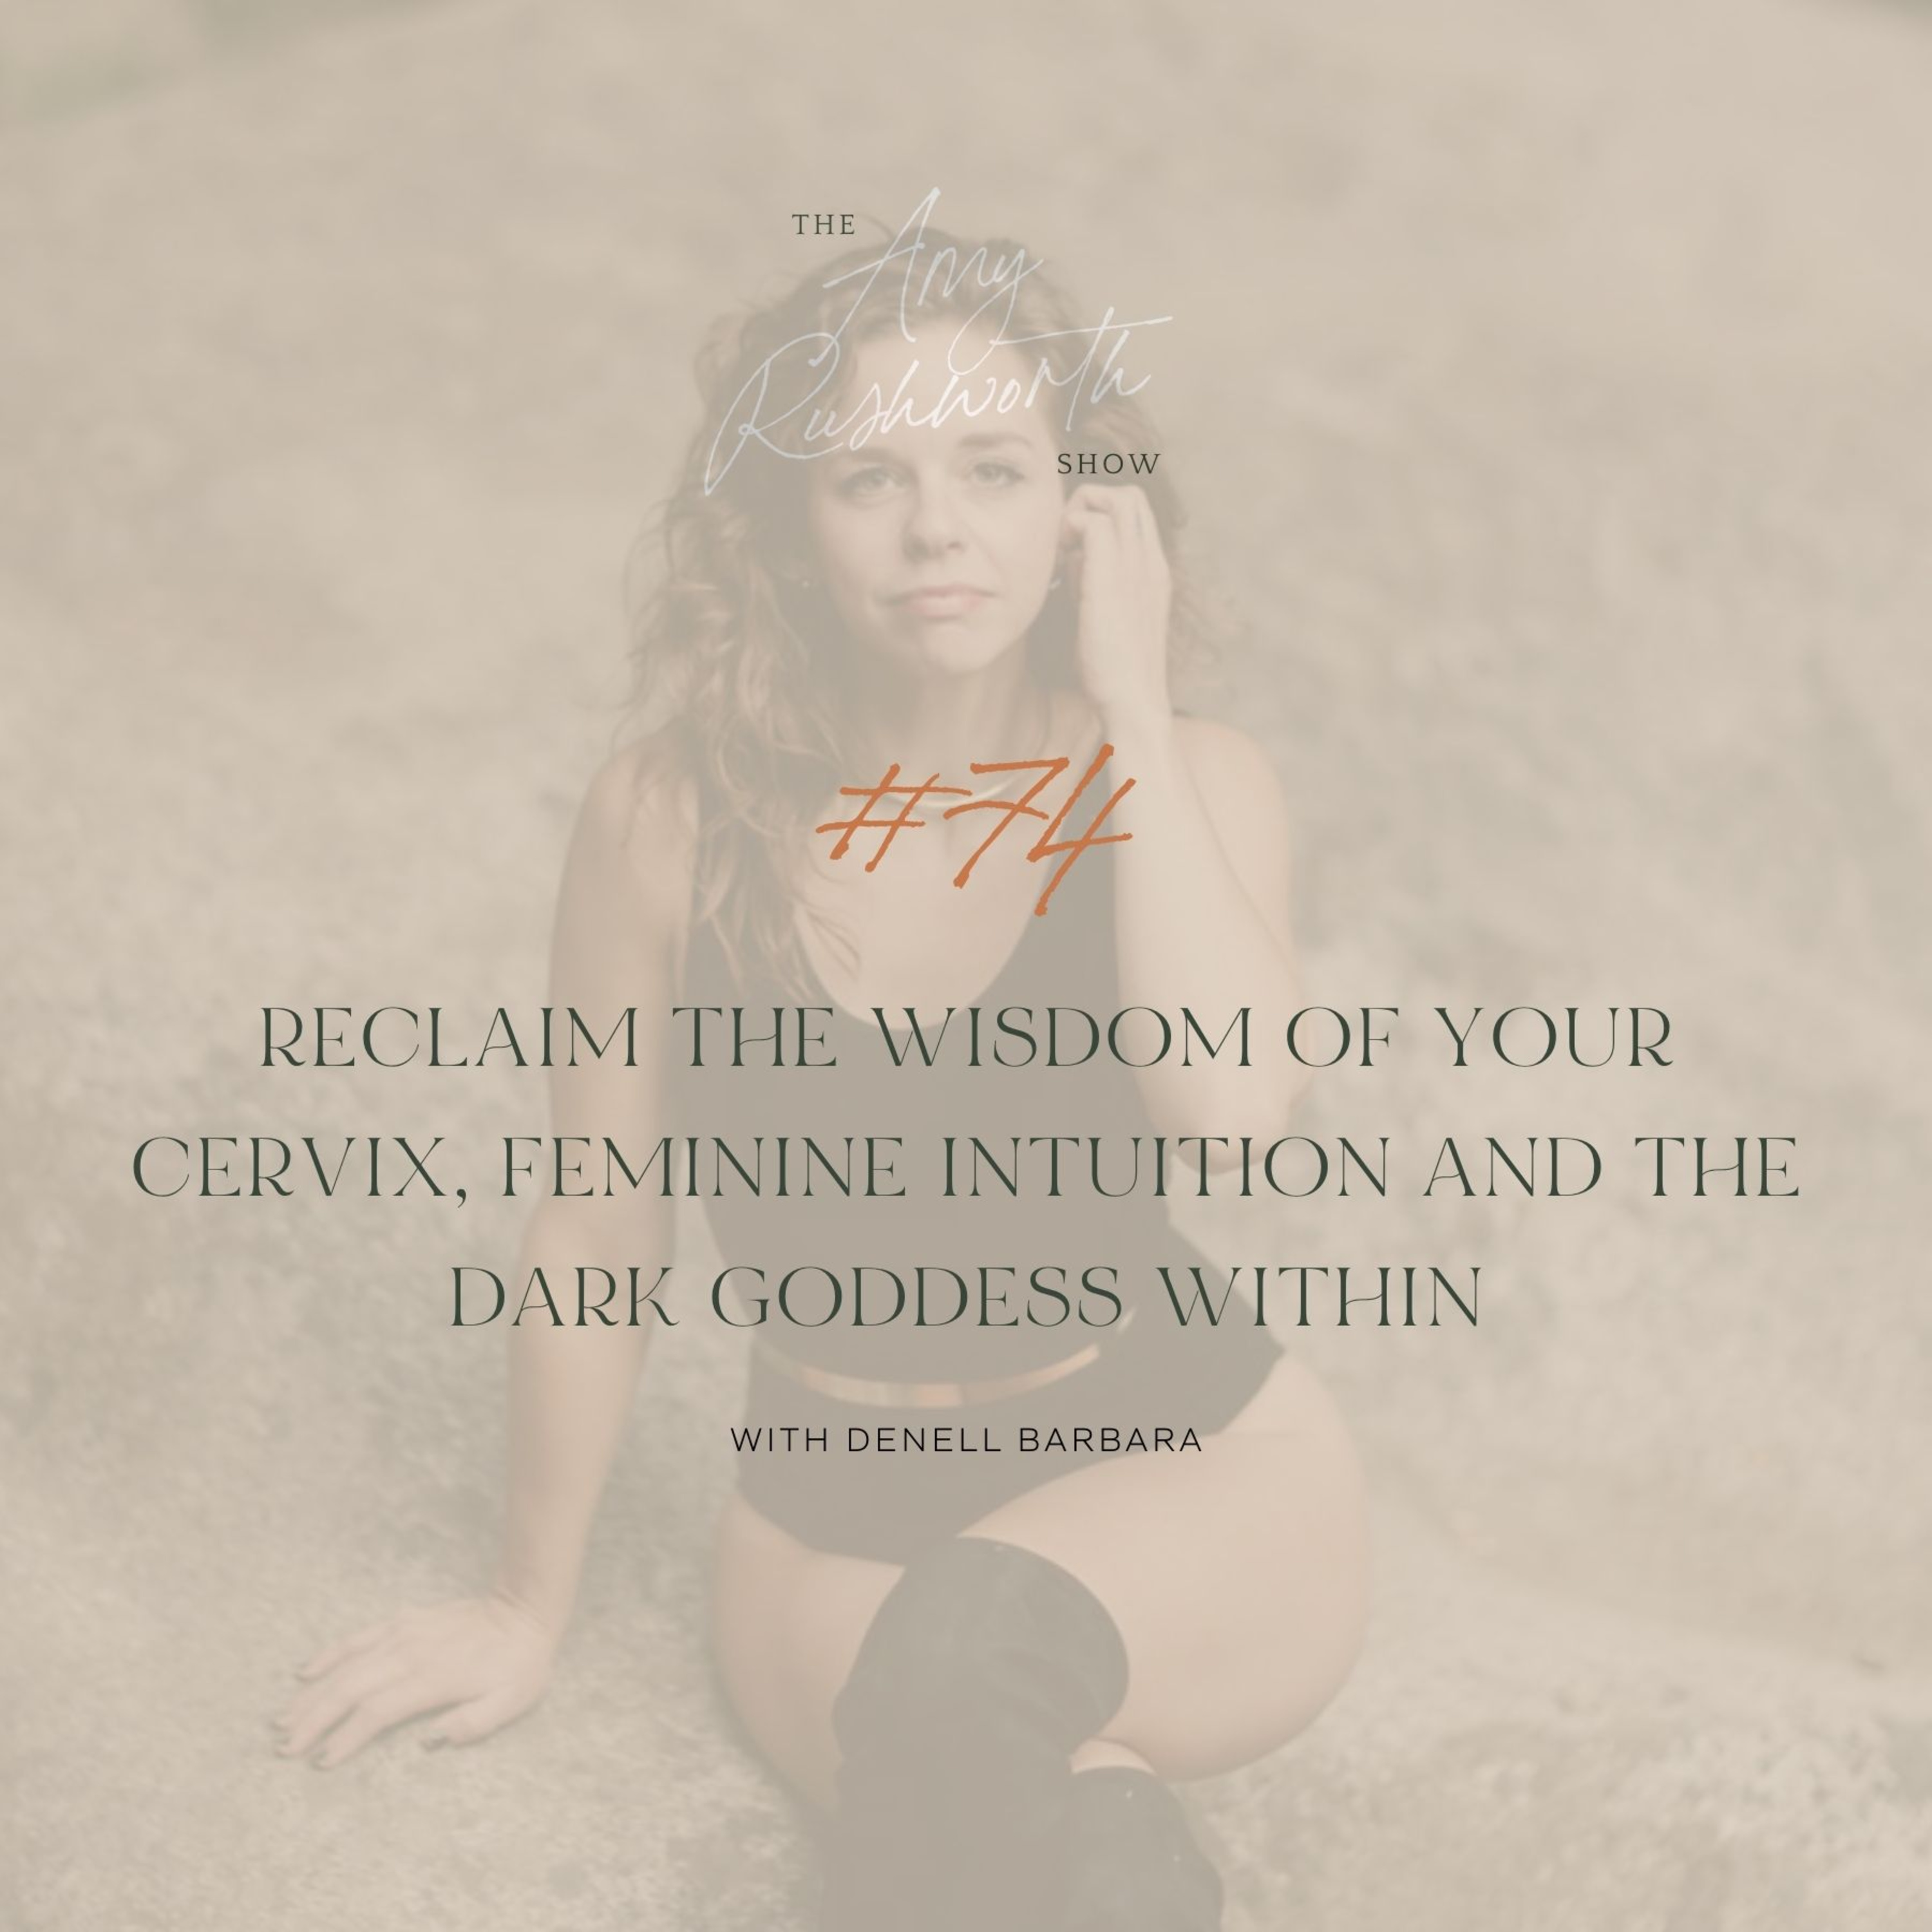 74 - Reclaim The Wisdom of Your Cervix, Feminine Intuition and the Dark Goddess Within with Denell Barbara